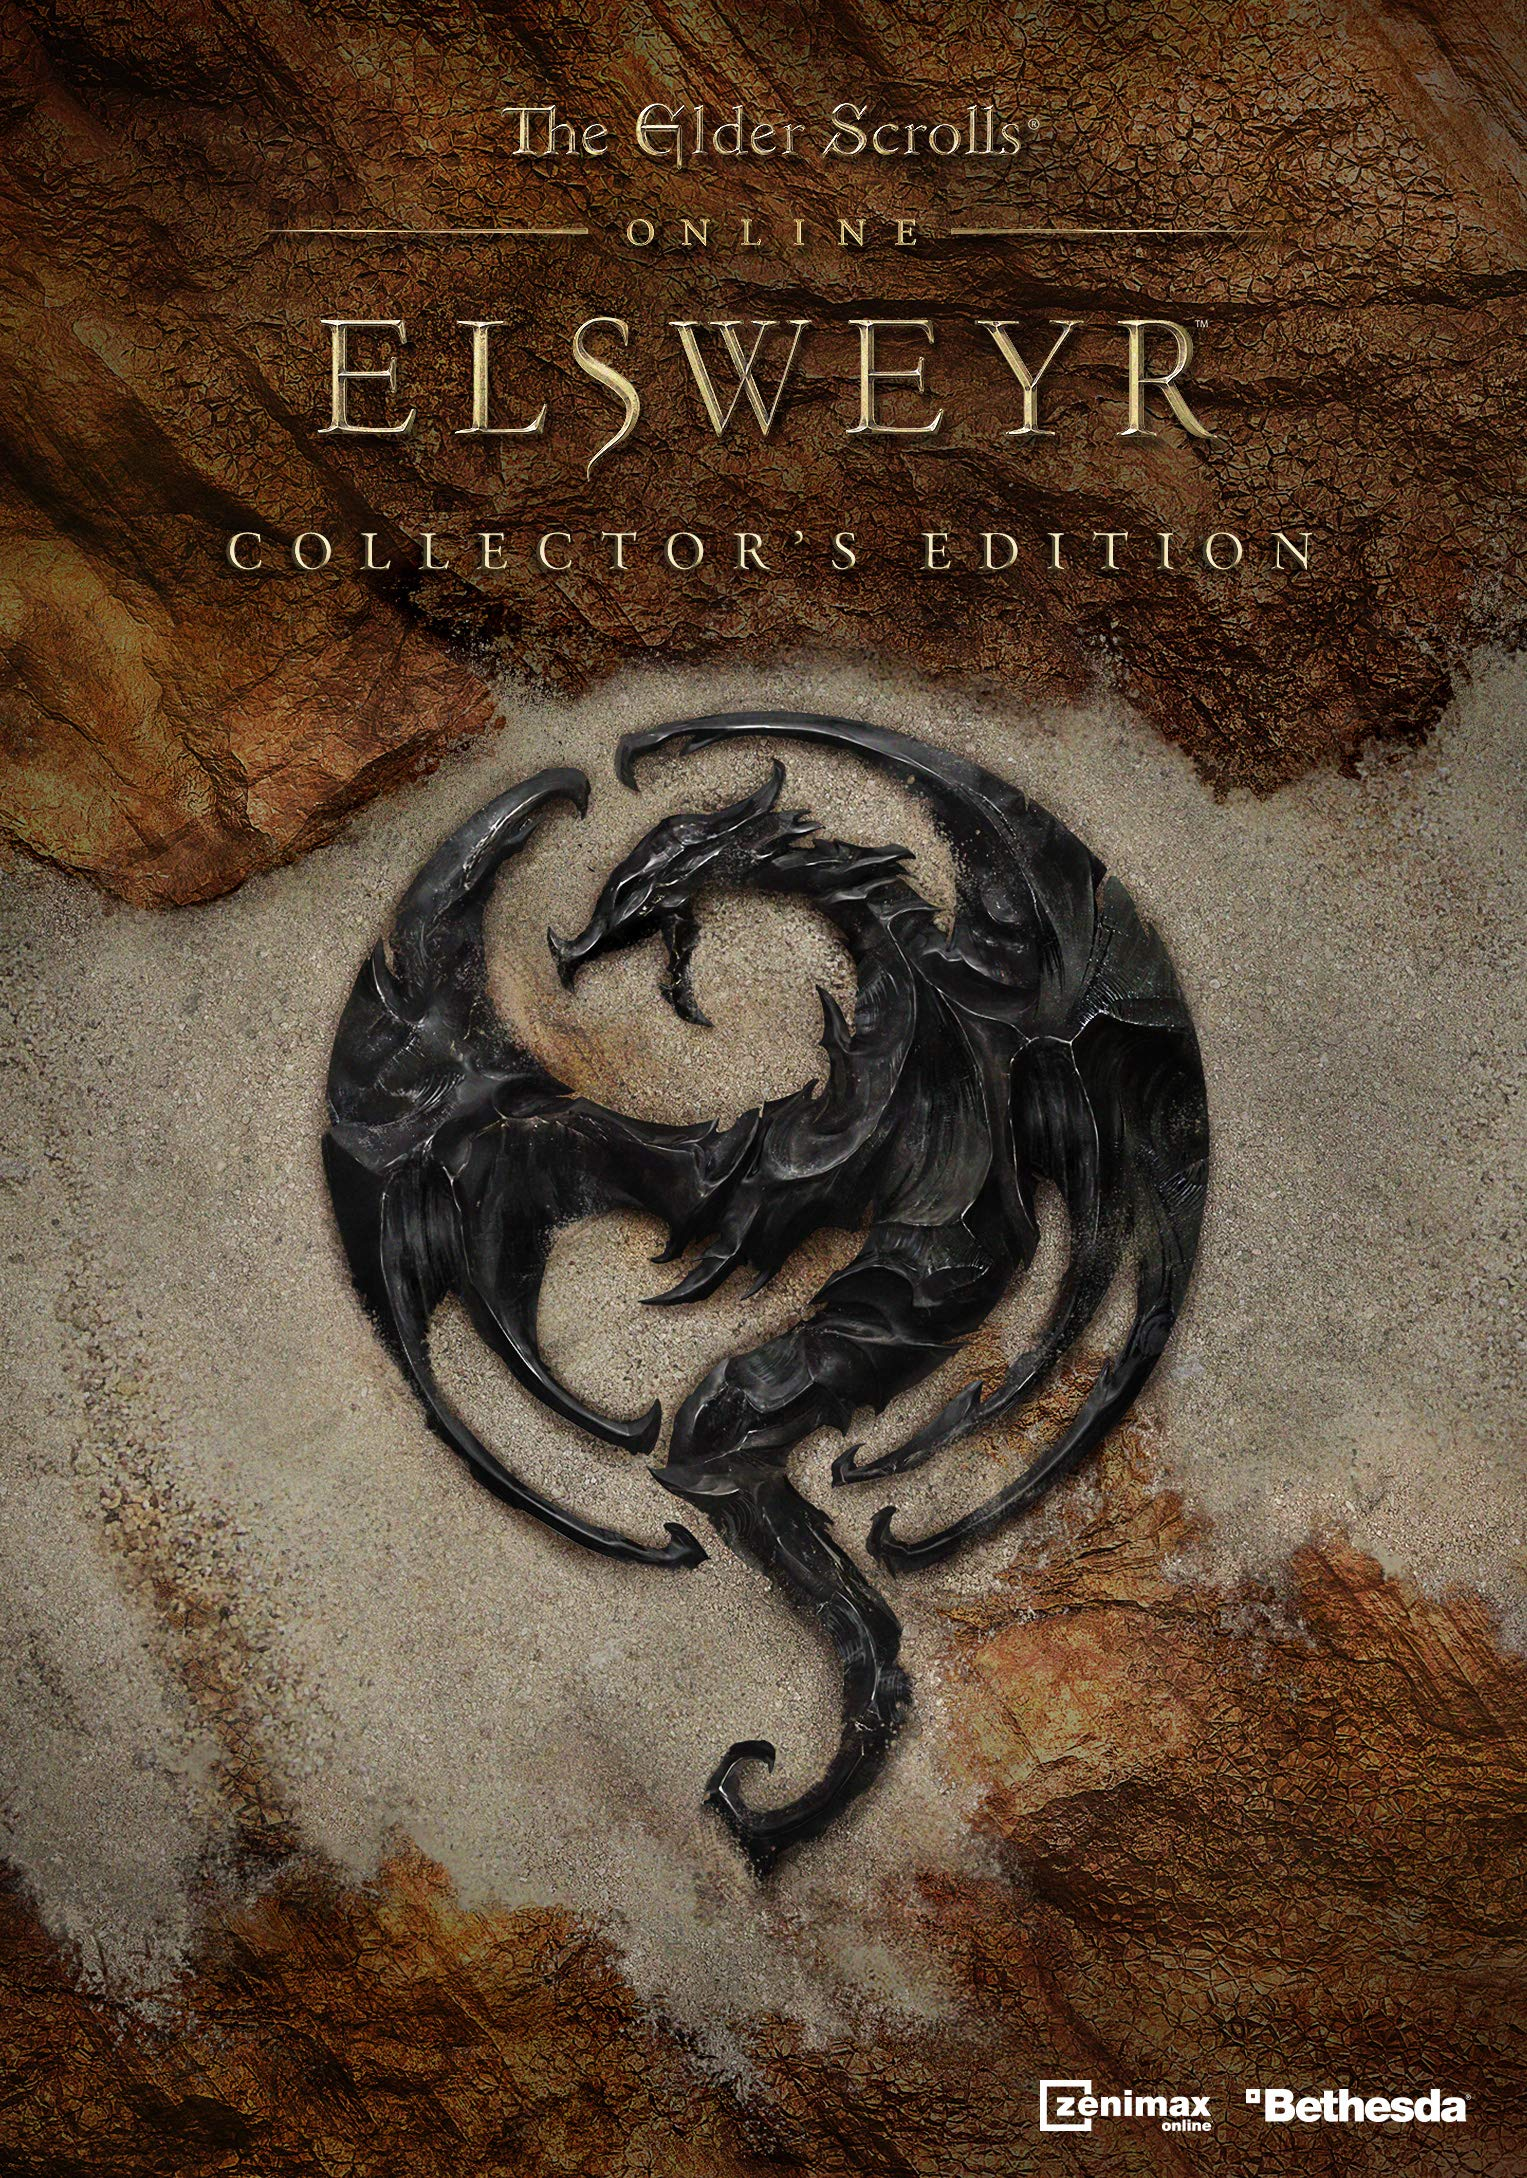 The Elder Scrolls Online: Elsweyr - Collector's Edition [Online Game Code]